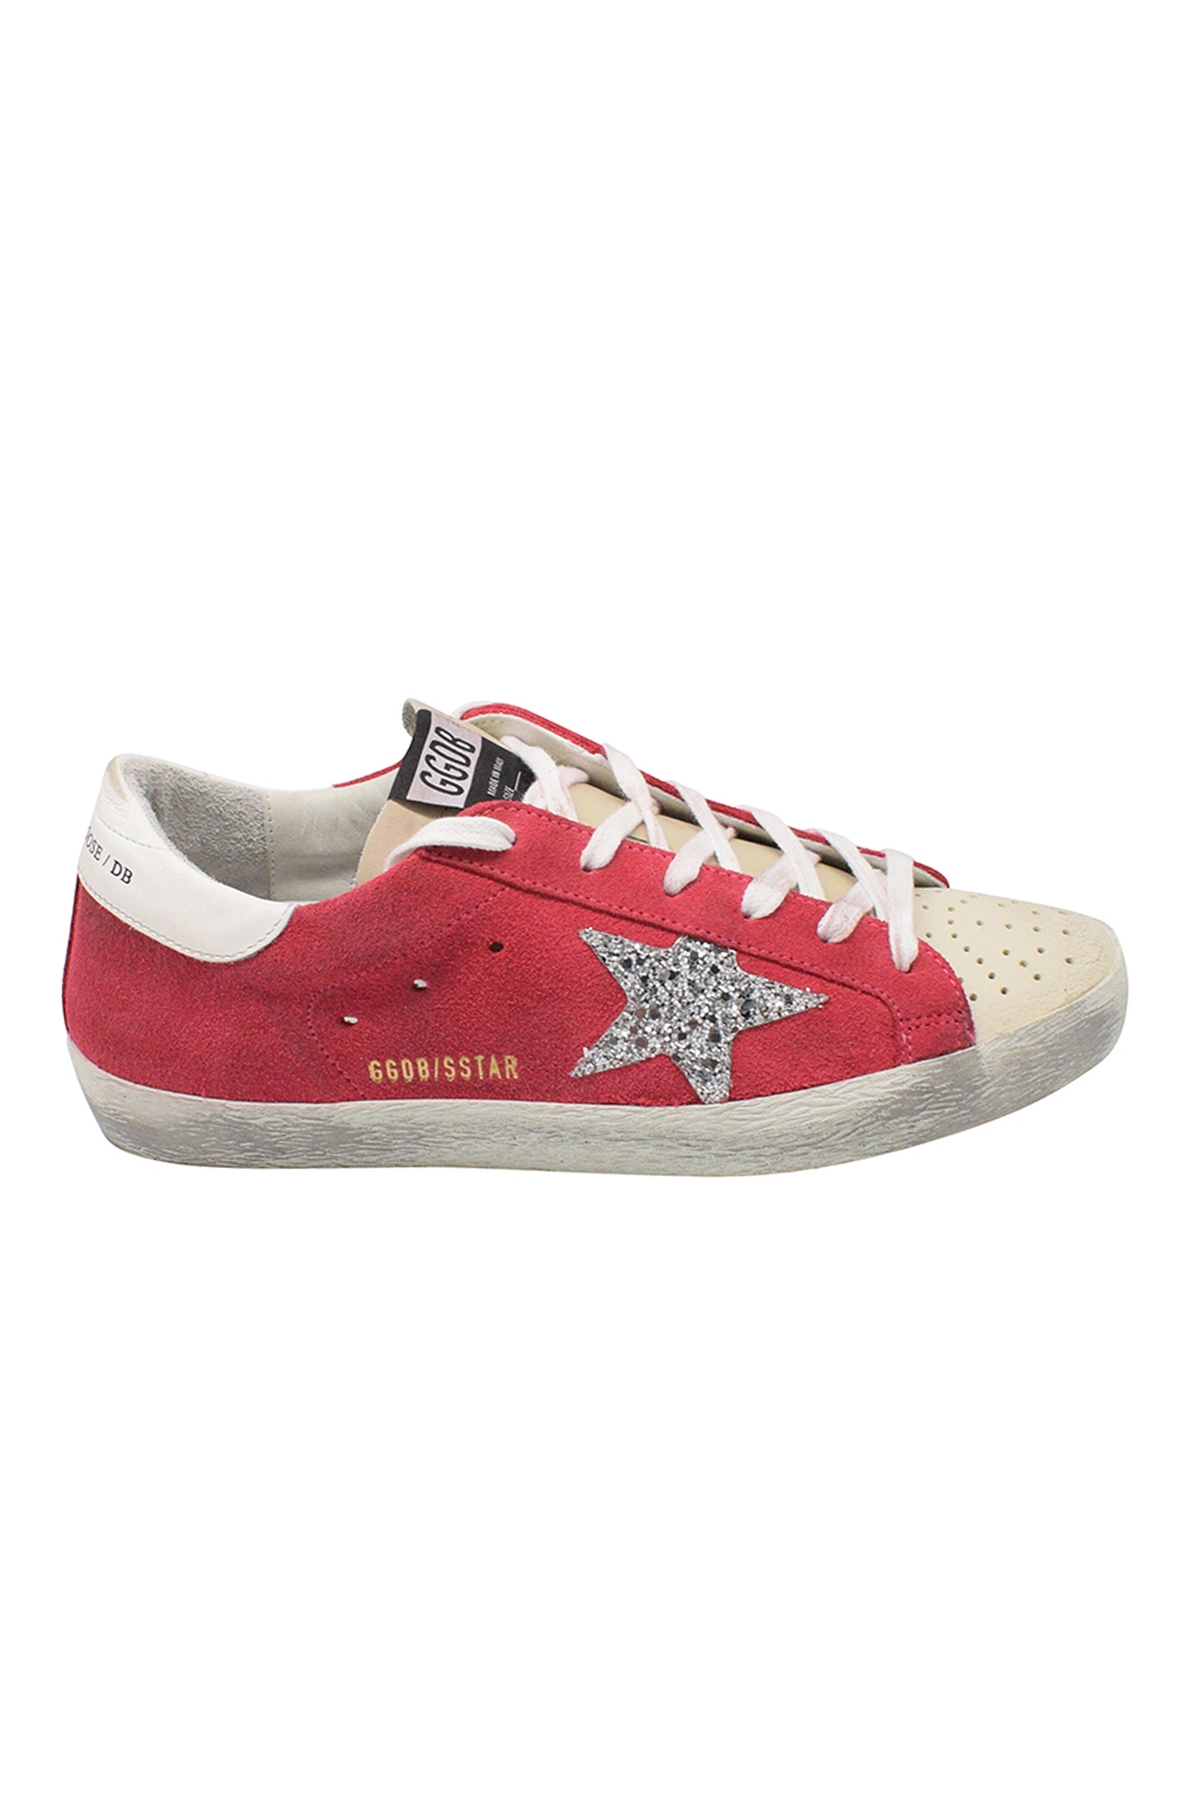 Golden Goose lace-up sneakers in vintage effect pink suede with glittered silver star and beige leather toe and tongue